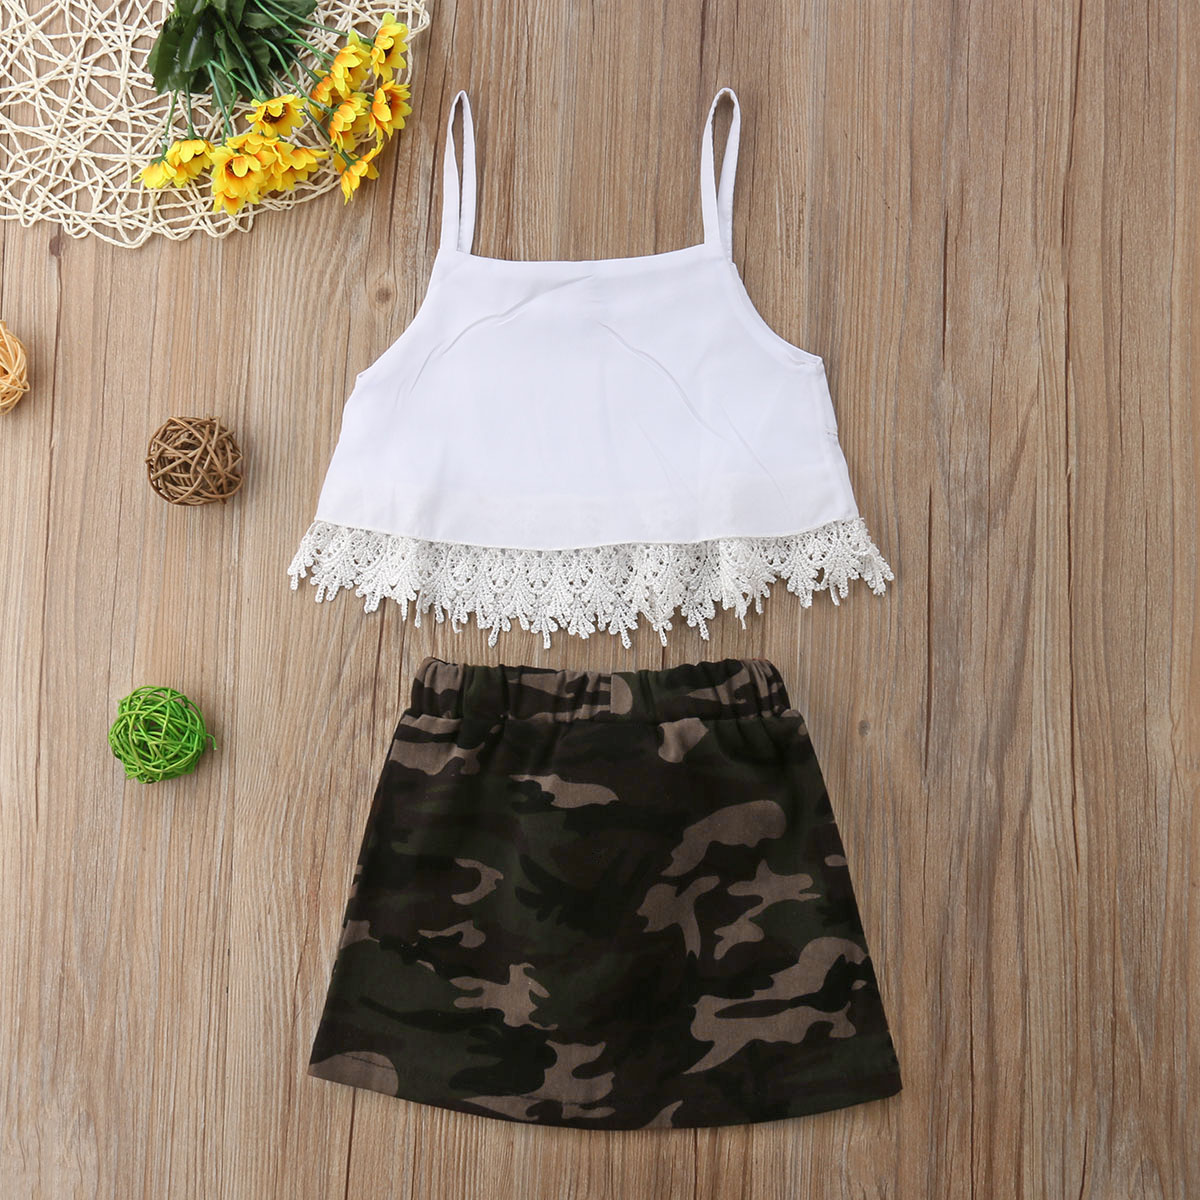 17d619eb4a4c8 Summer Sleeveless Crop Tops Tassel Lace Camouflage Skirt Girls Clothing  Cute Outfits 2PCs Children Kid Baby Girl Clothes Set